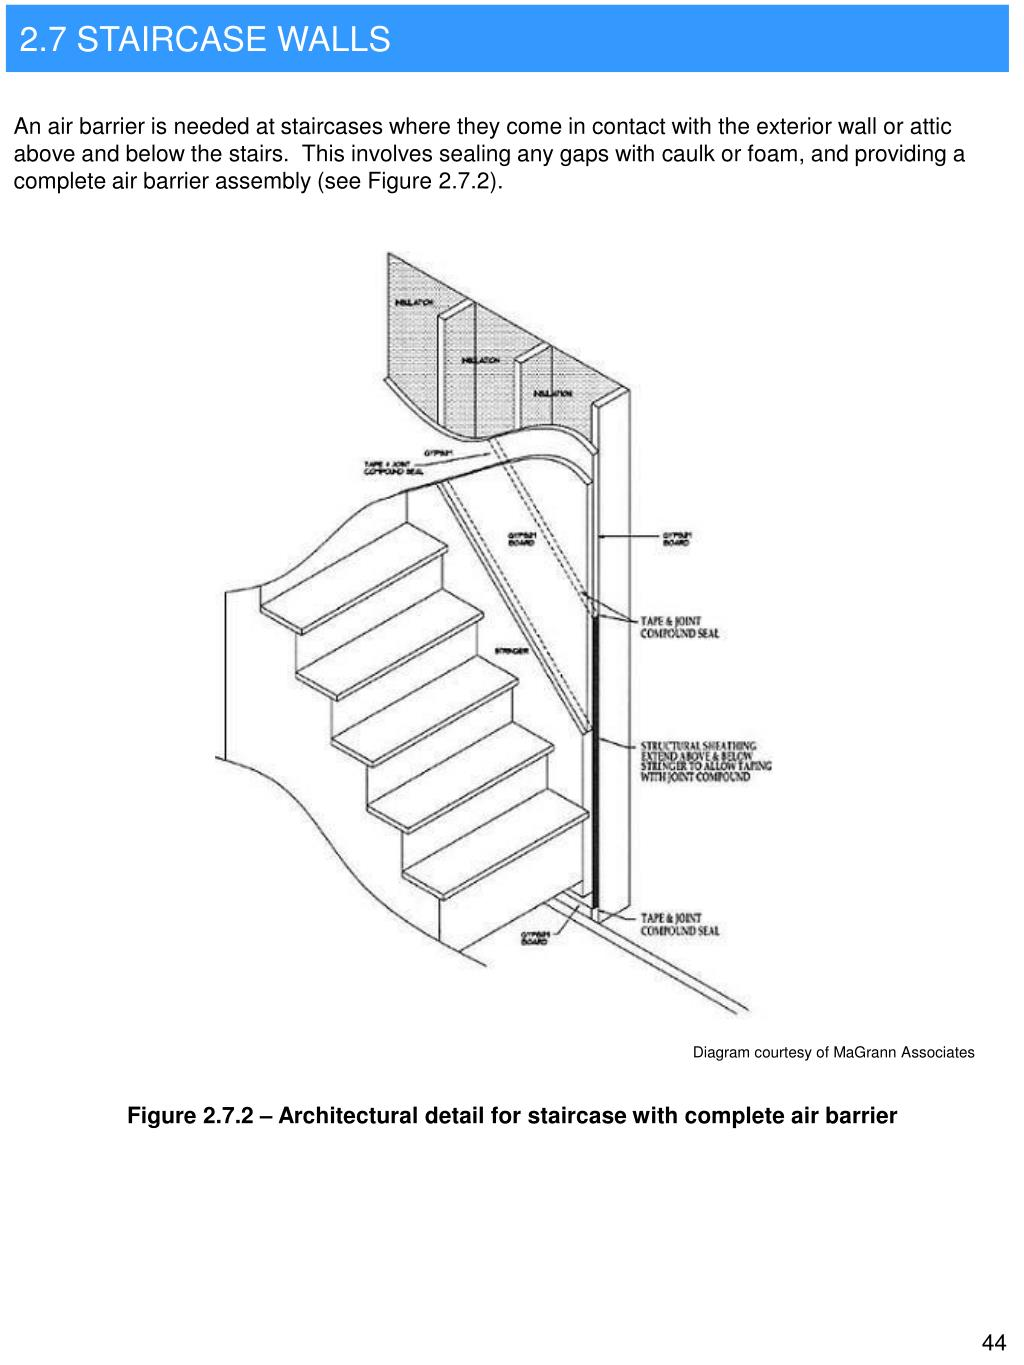 2.7 STAIRCASE WALLS